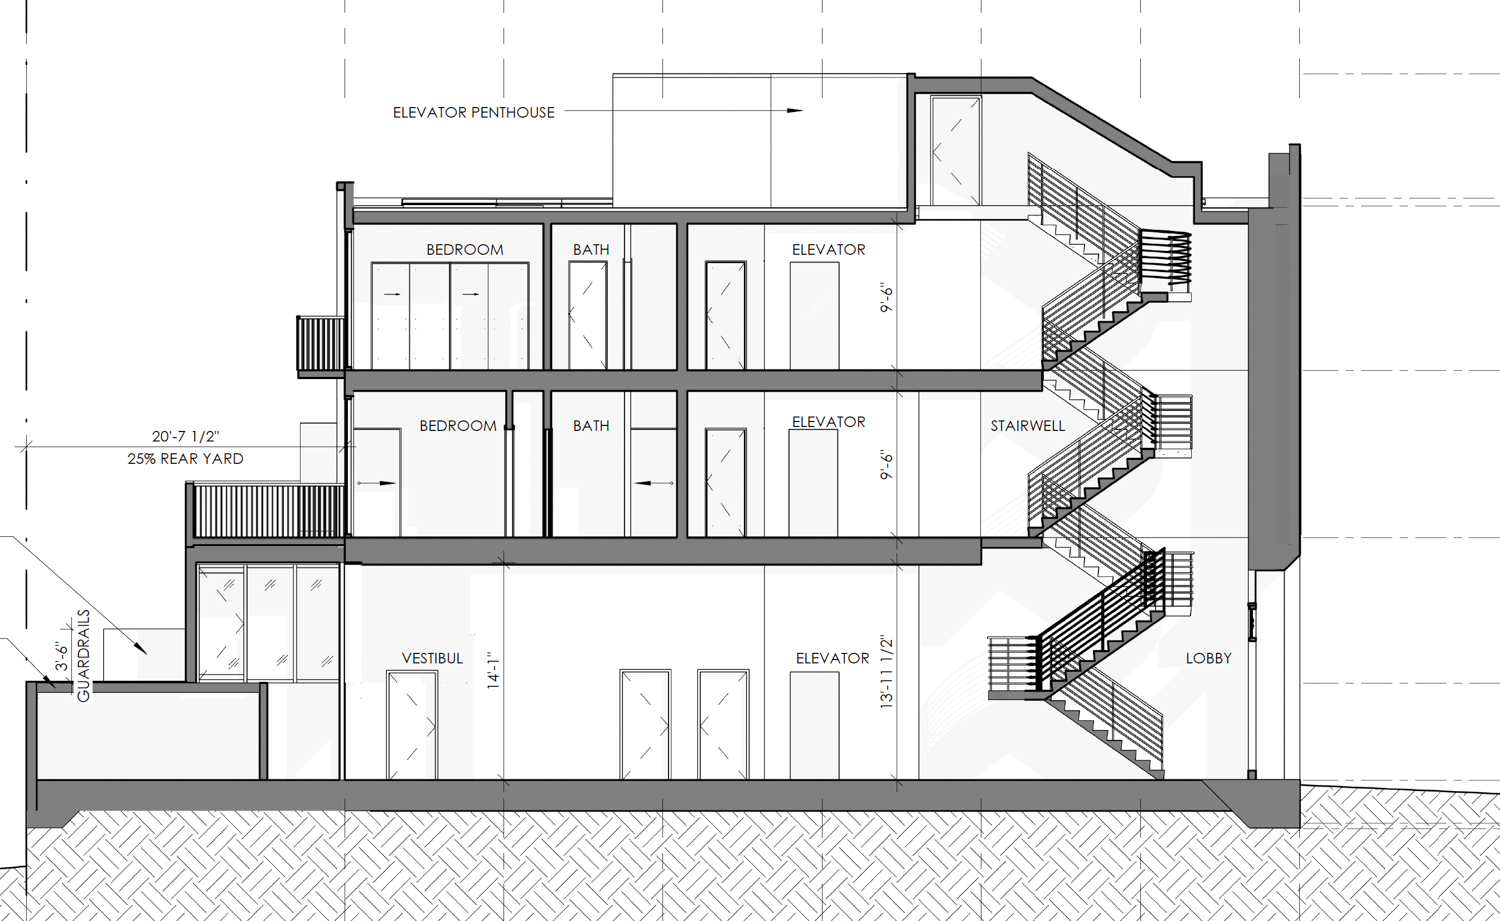 2453 Sacramento Street vertical elevation, rendering by Thousand Architects